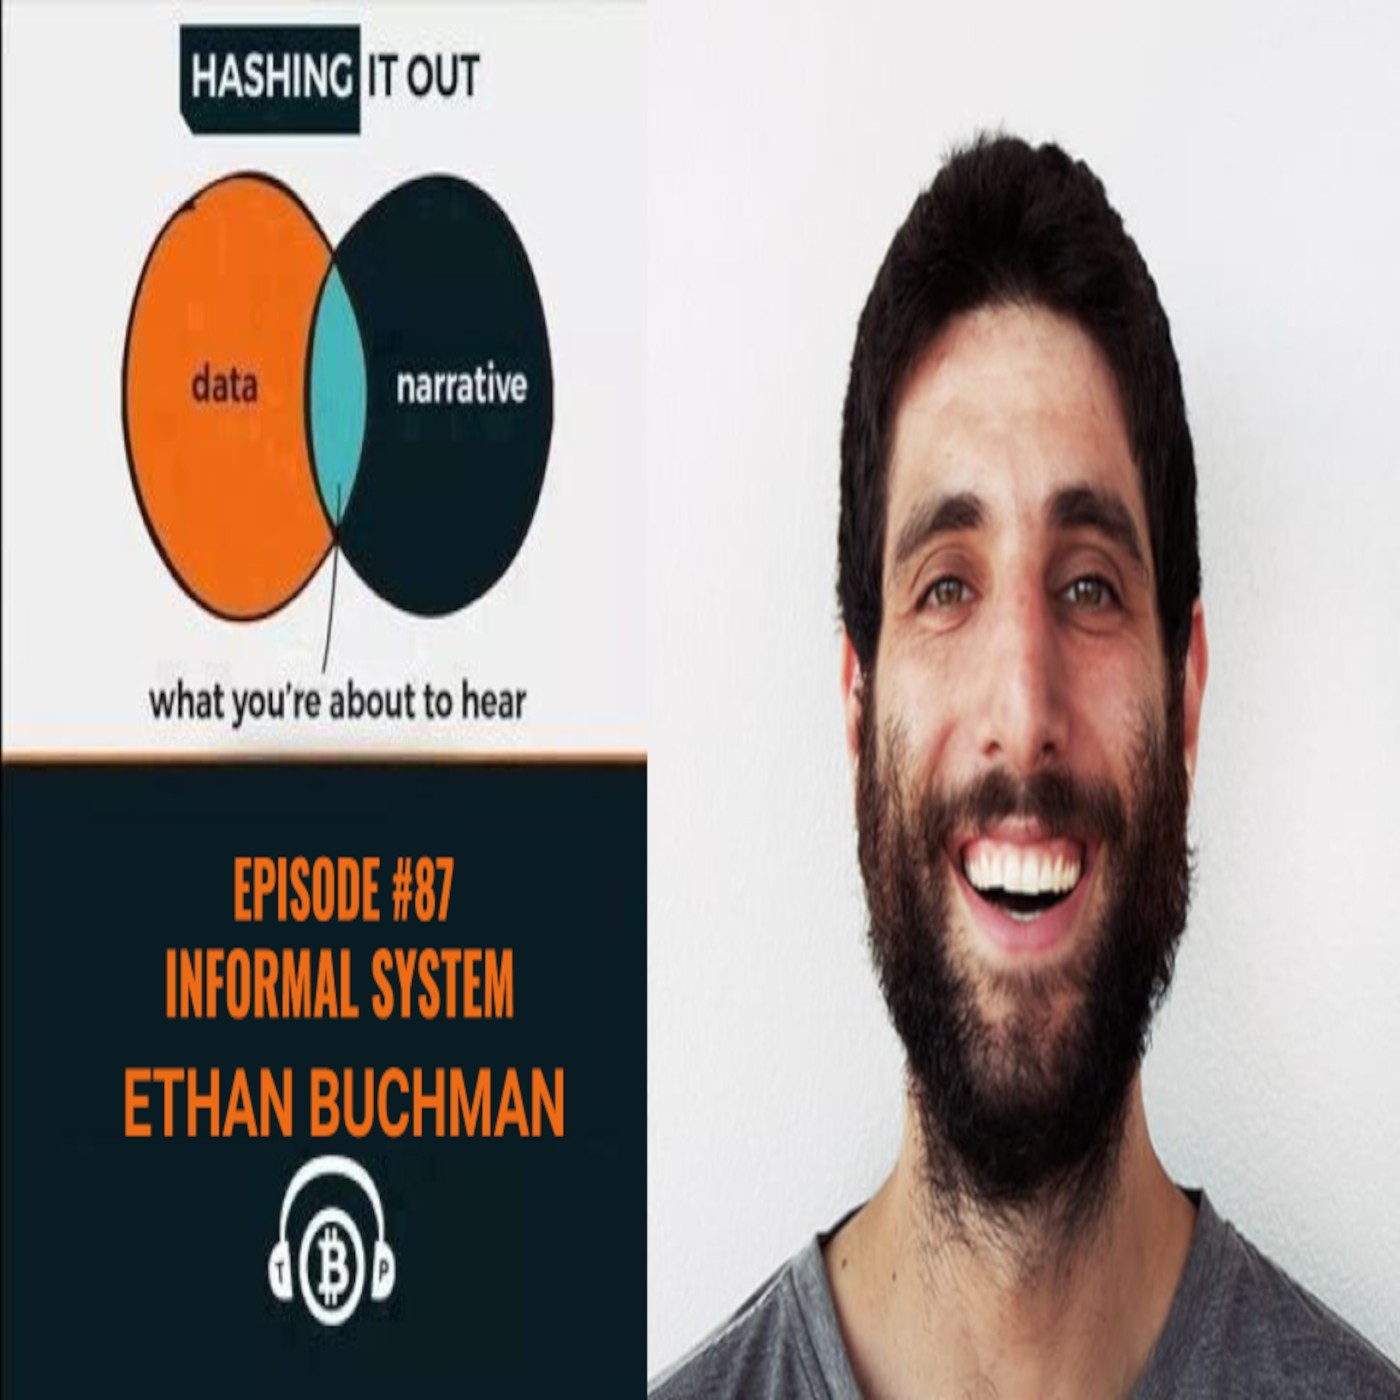 Hashing It Out #87-Informal Systems Ethan Buchman